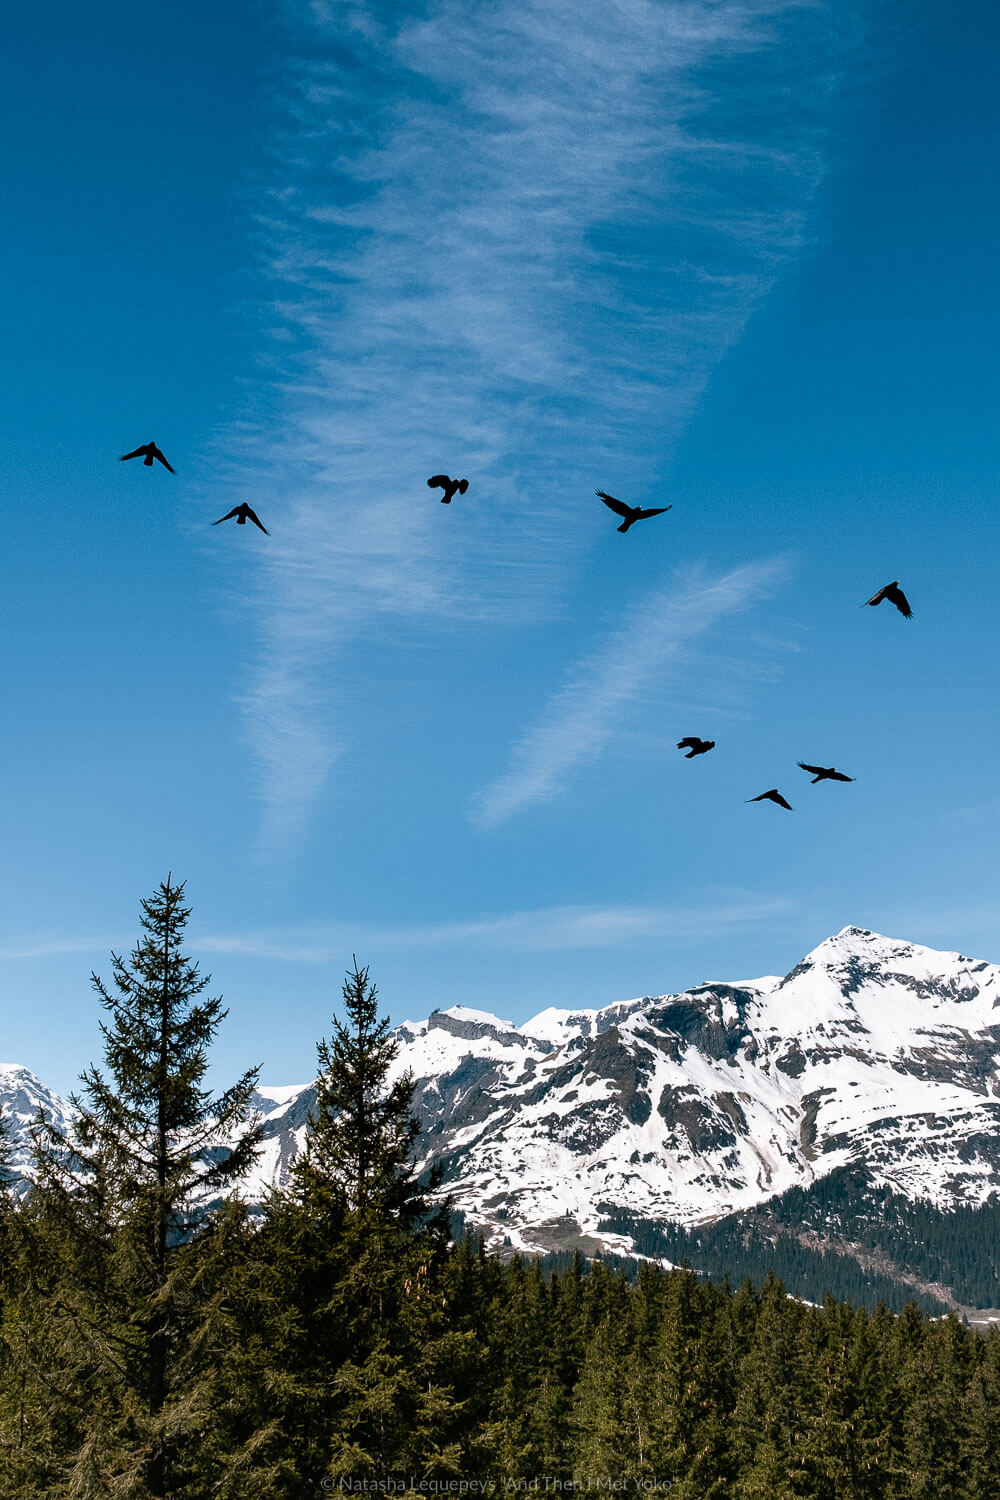 """Birds on a hike in Wengen, Switzerland. Travel photography and guide by © Natasha Lequepeys for """"And Then I Met Yoko"""". #wengen #switzerland #jungfrau #travelphotography #fujifilm"""